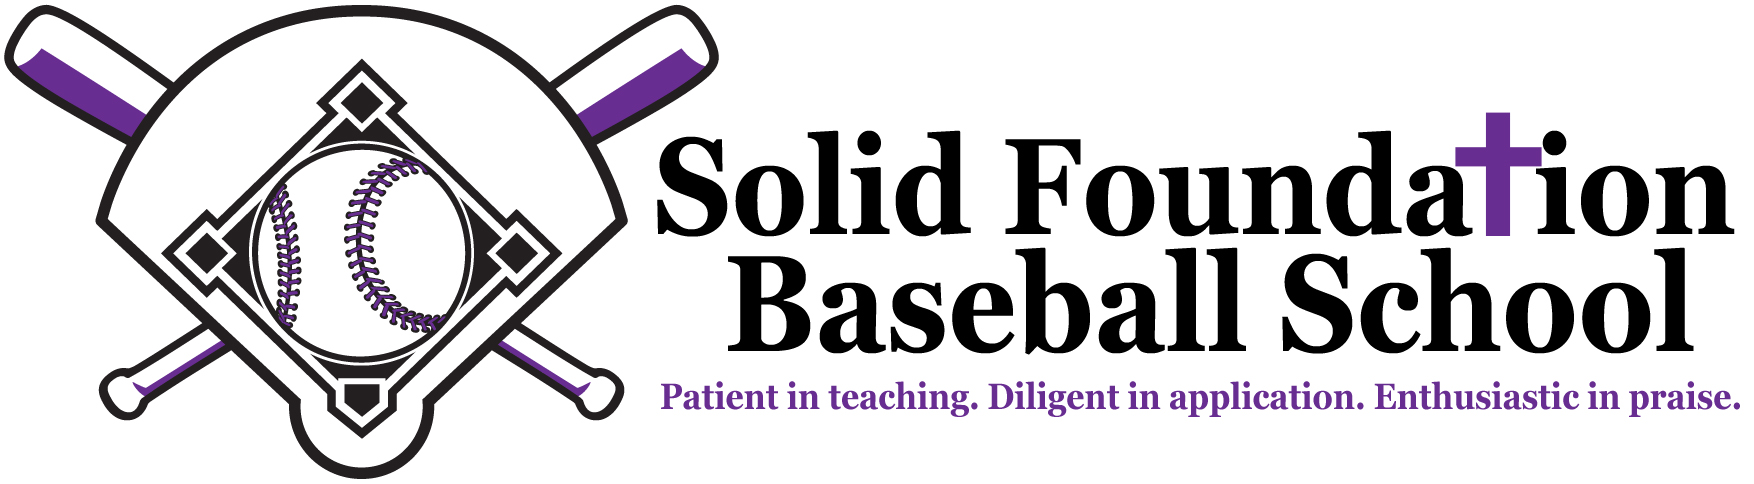 Solid Foundation Baseball School, Inc.